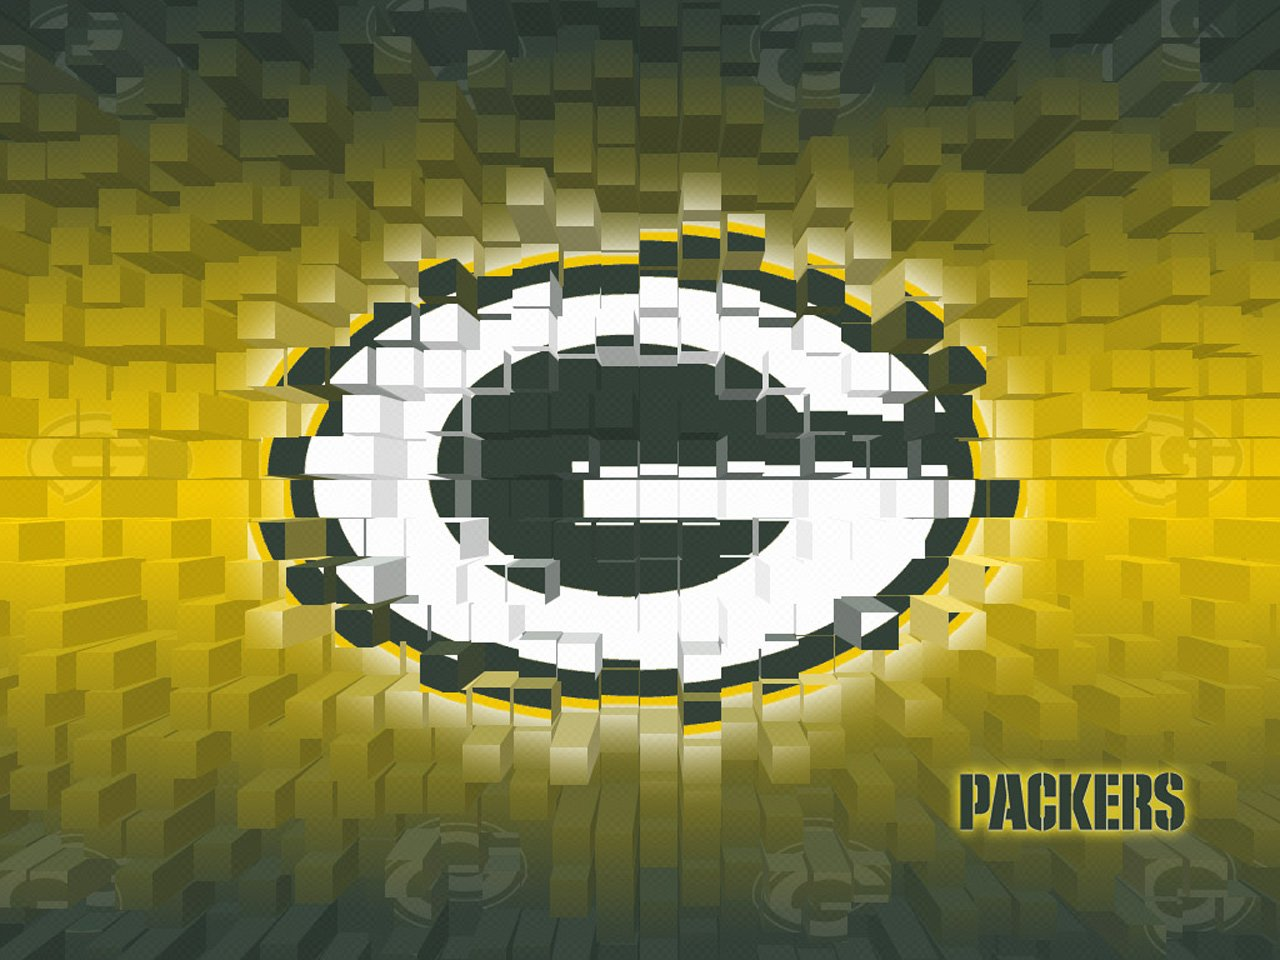 Green Bay Packers desktop wallpapers Green Bay Packers wallpapers 1280x960